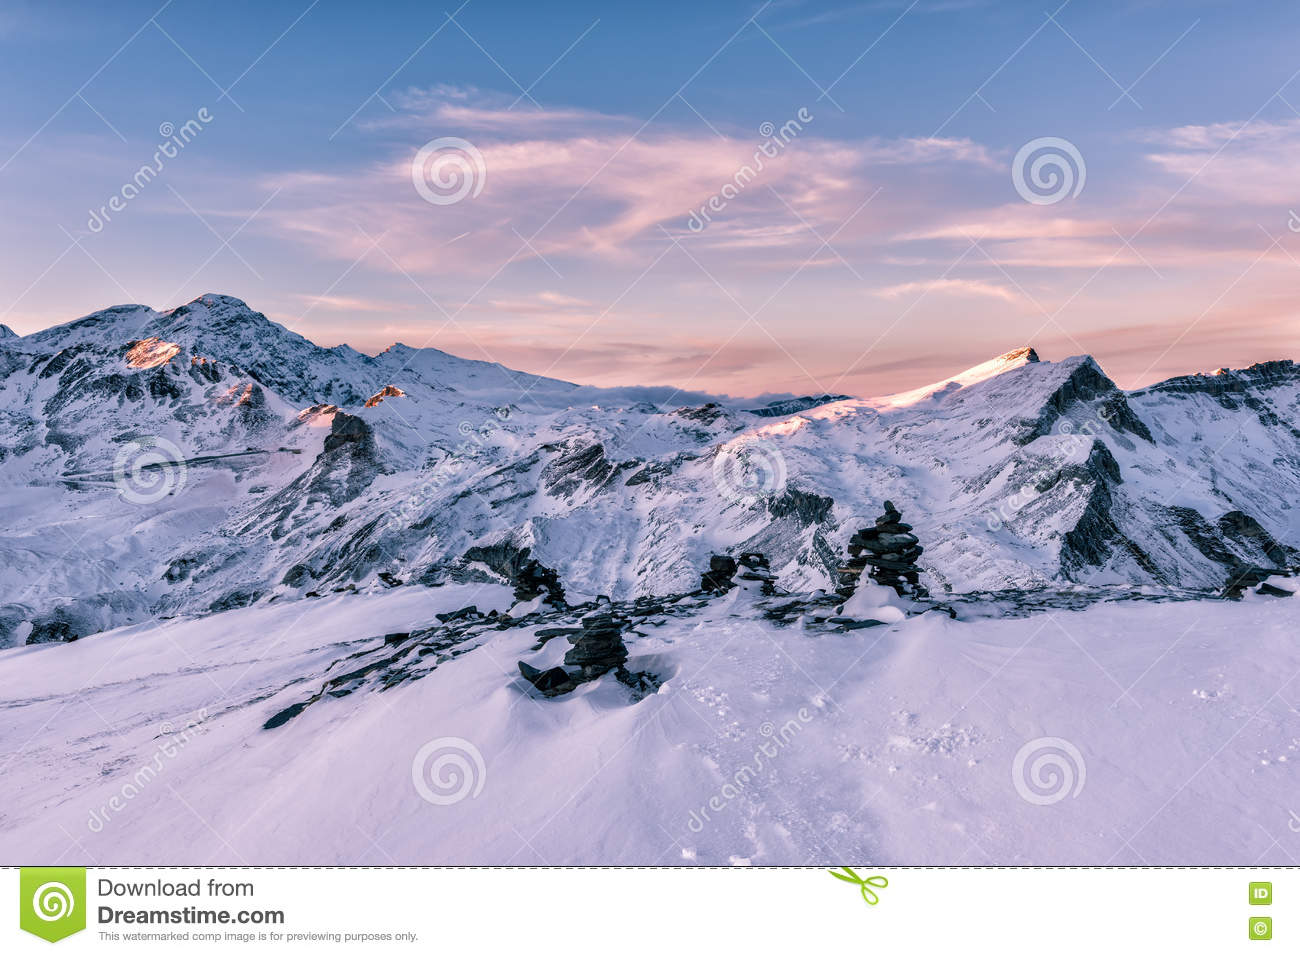 Gentle Pink Sunset Light At Winter Alps Mountains Stock Photo.